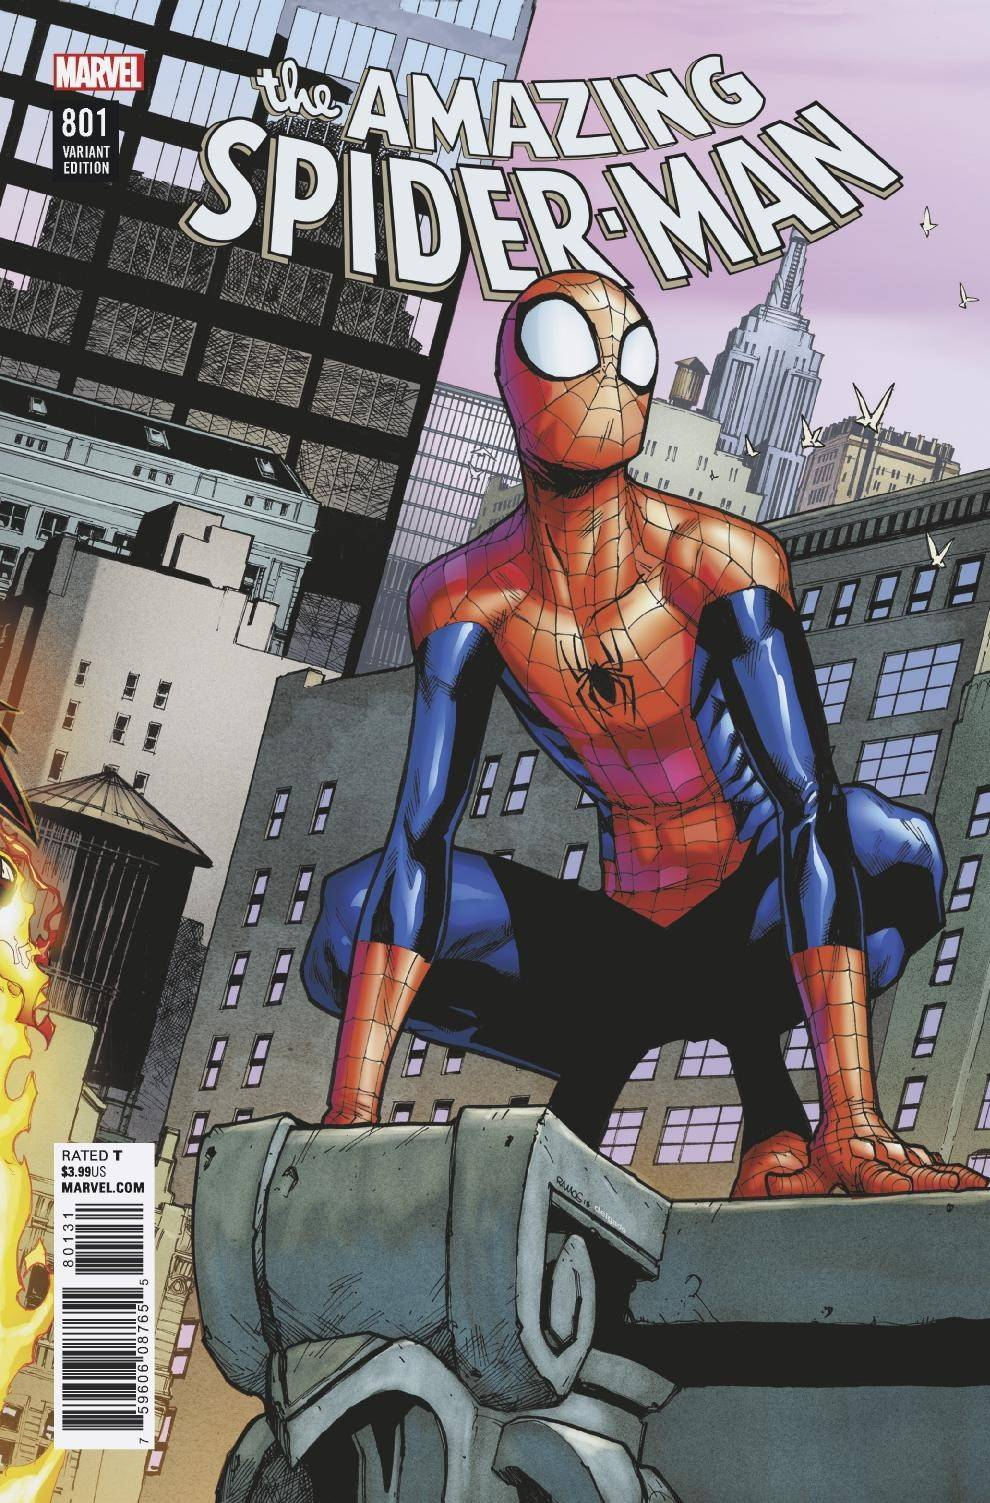 06/20/2018 AMAZING SPIDER-MAN #801 RAMOS CONNECTING VARIANT